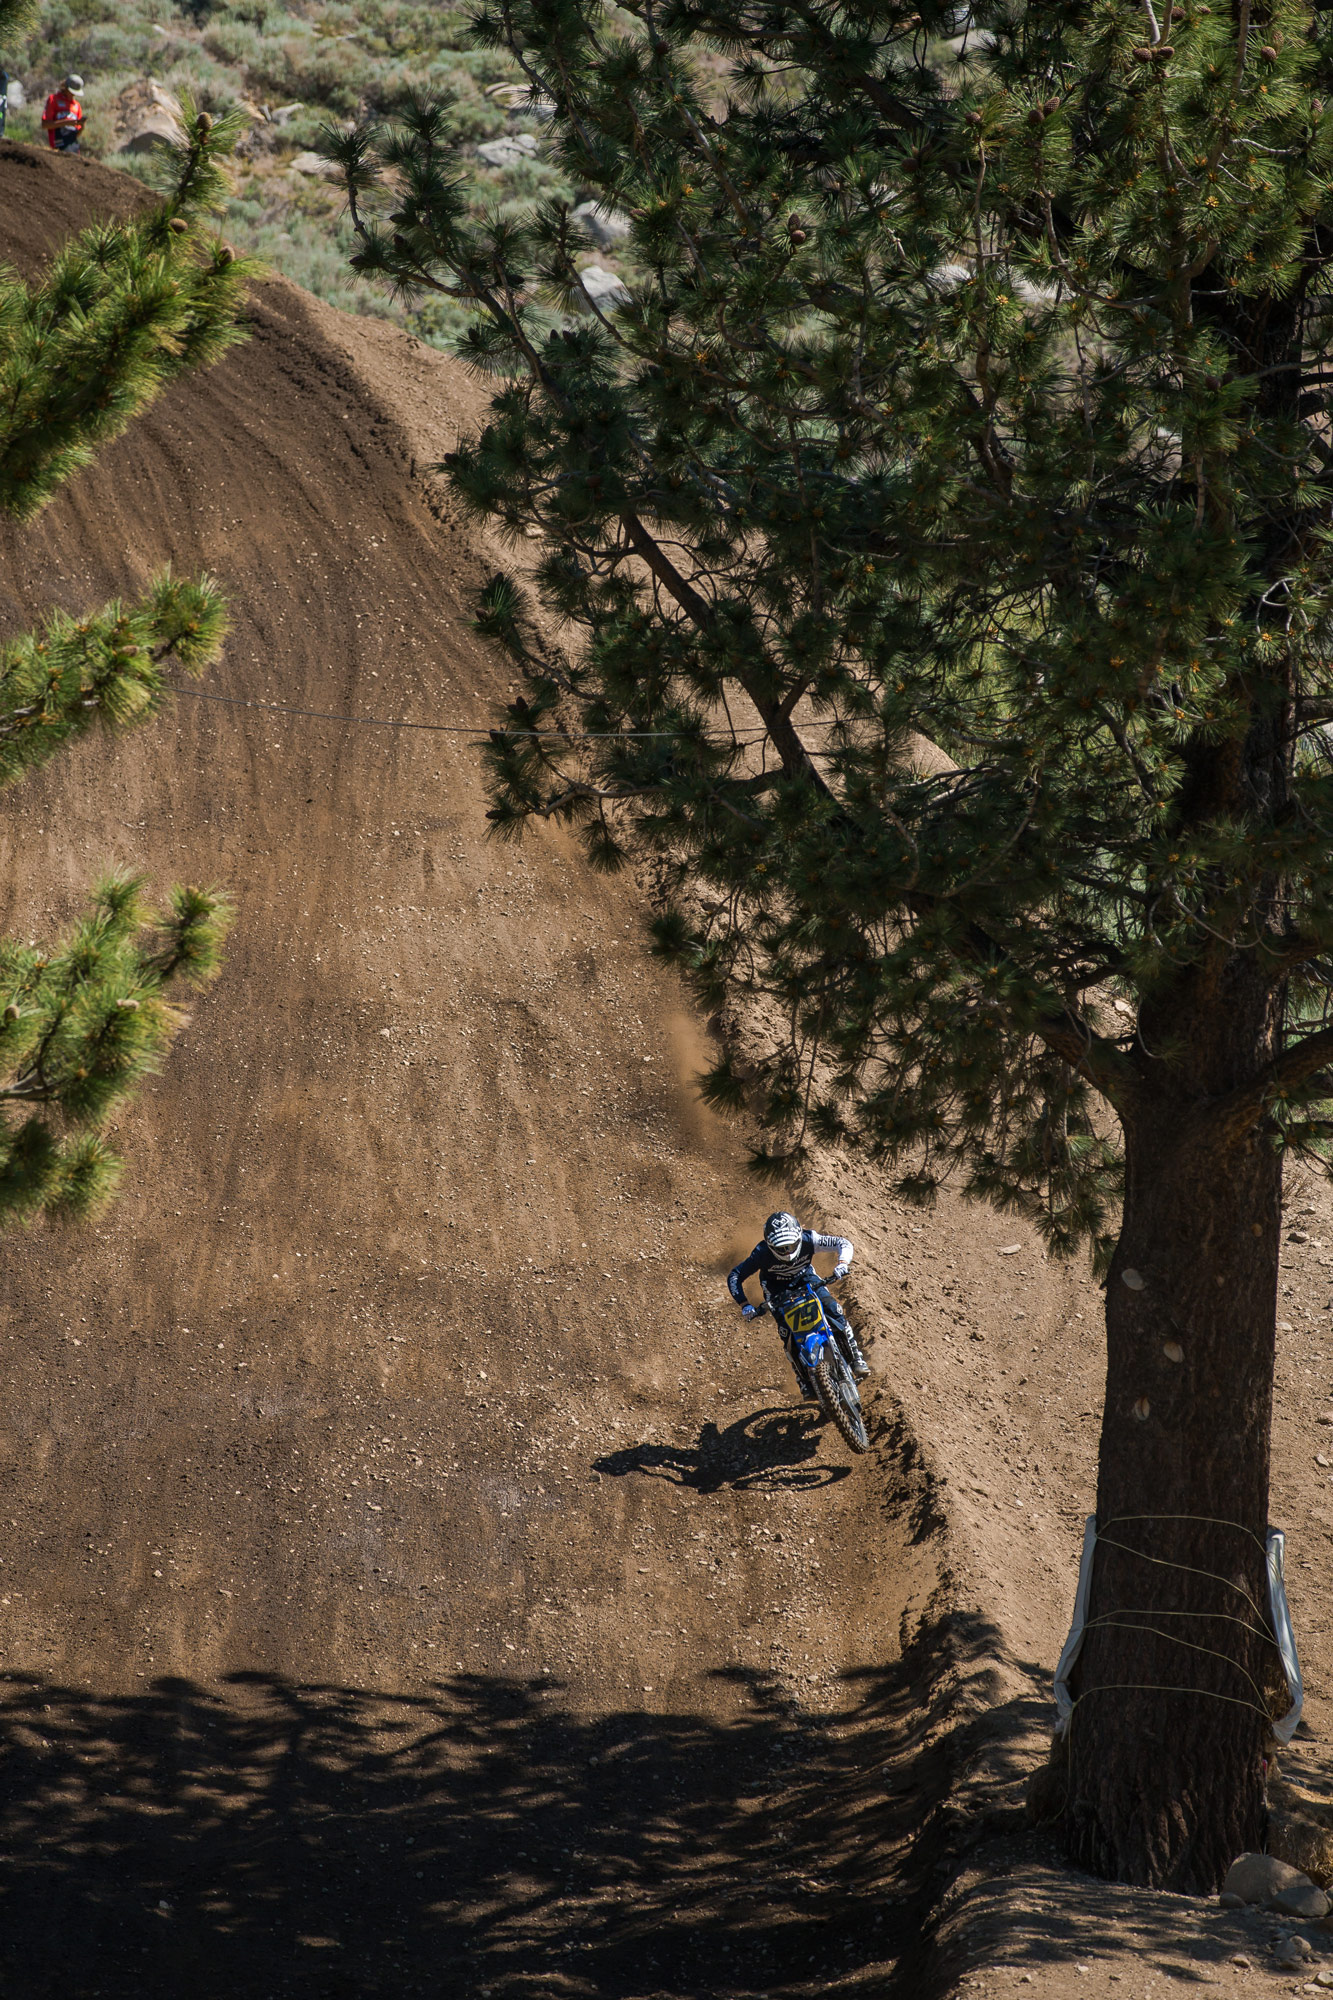 Racing High At 8,000 FT | 50th Annual Mammoth Motocross Photo Story